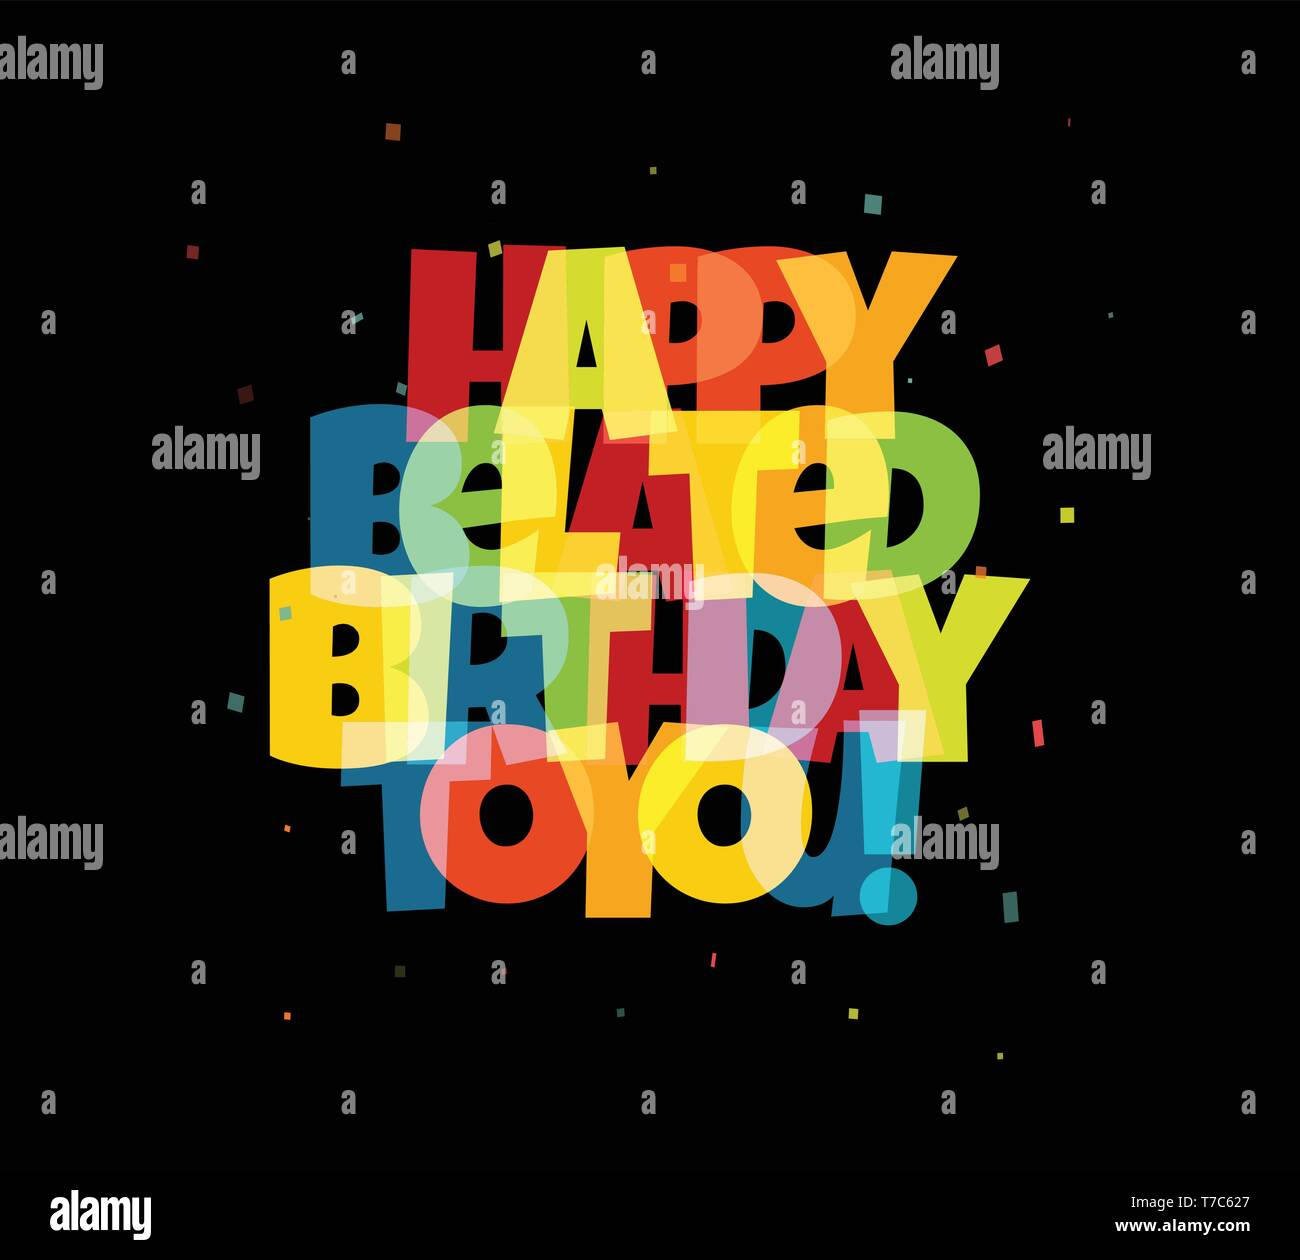 Greeting card for birthday. Colorful transparency and blending effect letters and confetti on black background. Vector illustration. - Stock Image